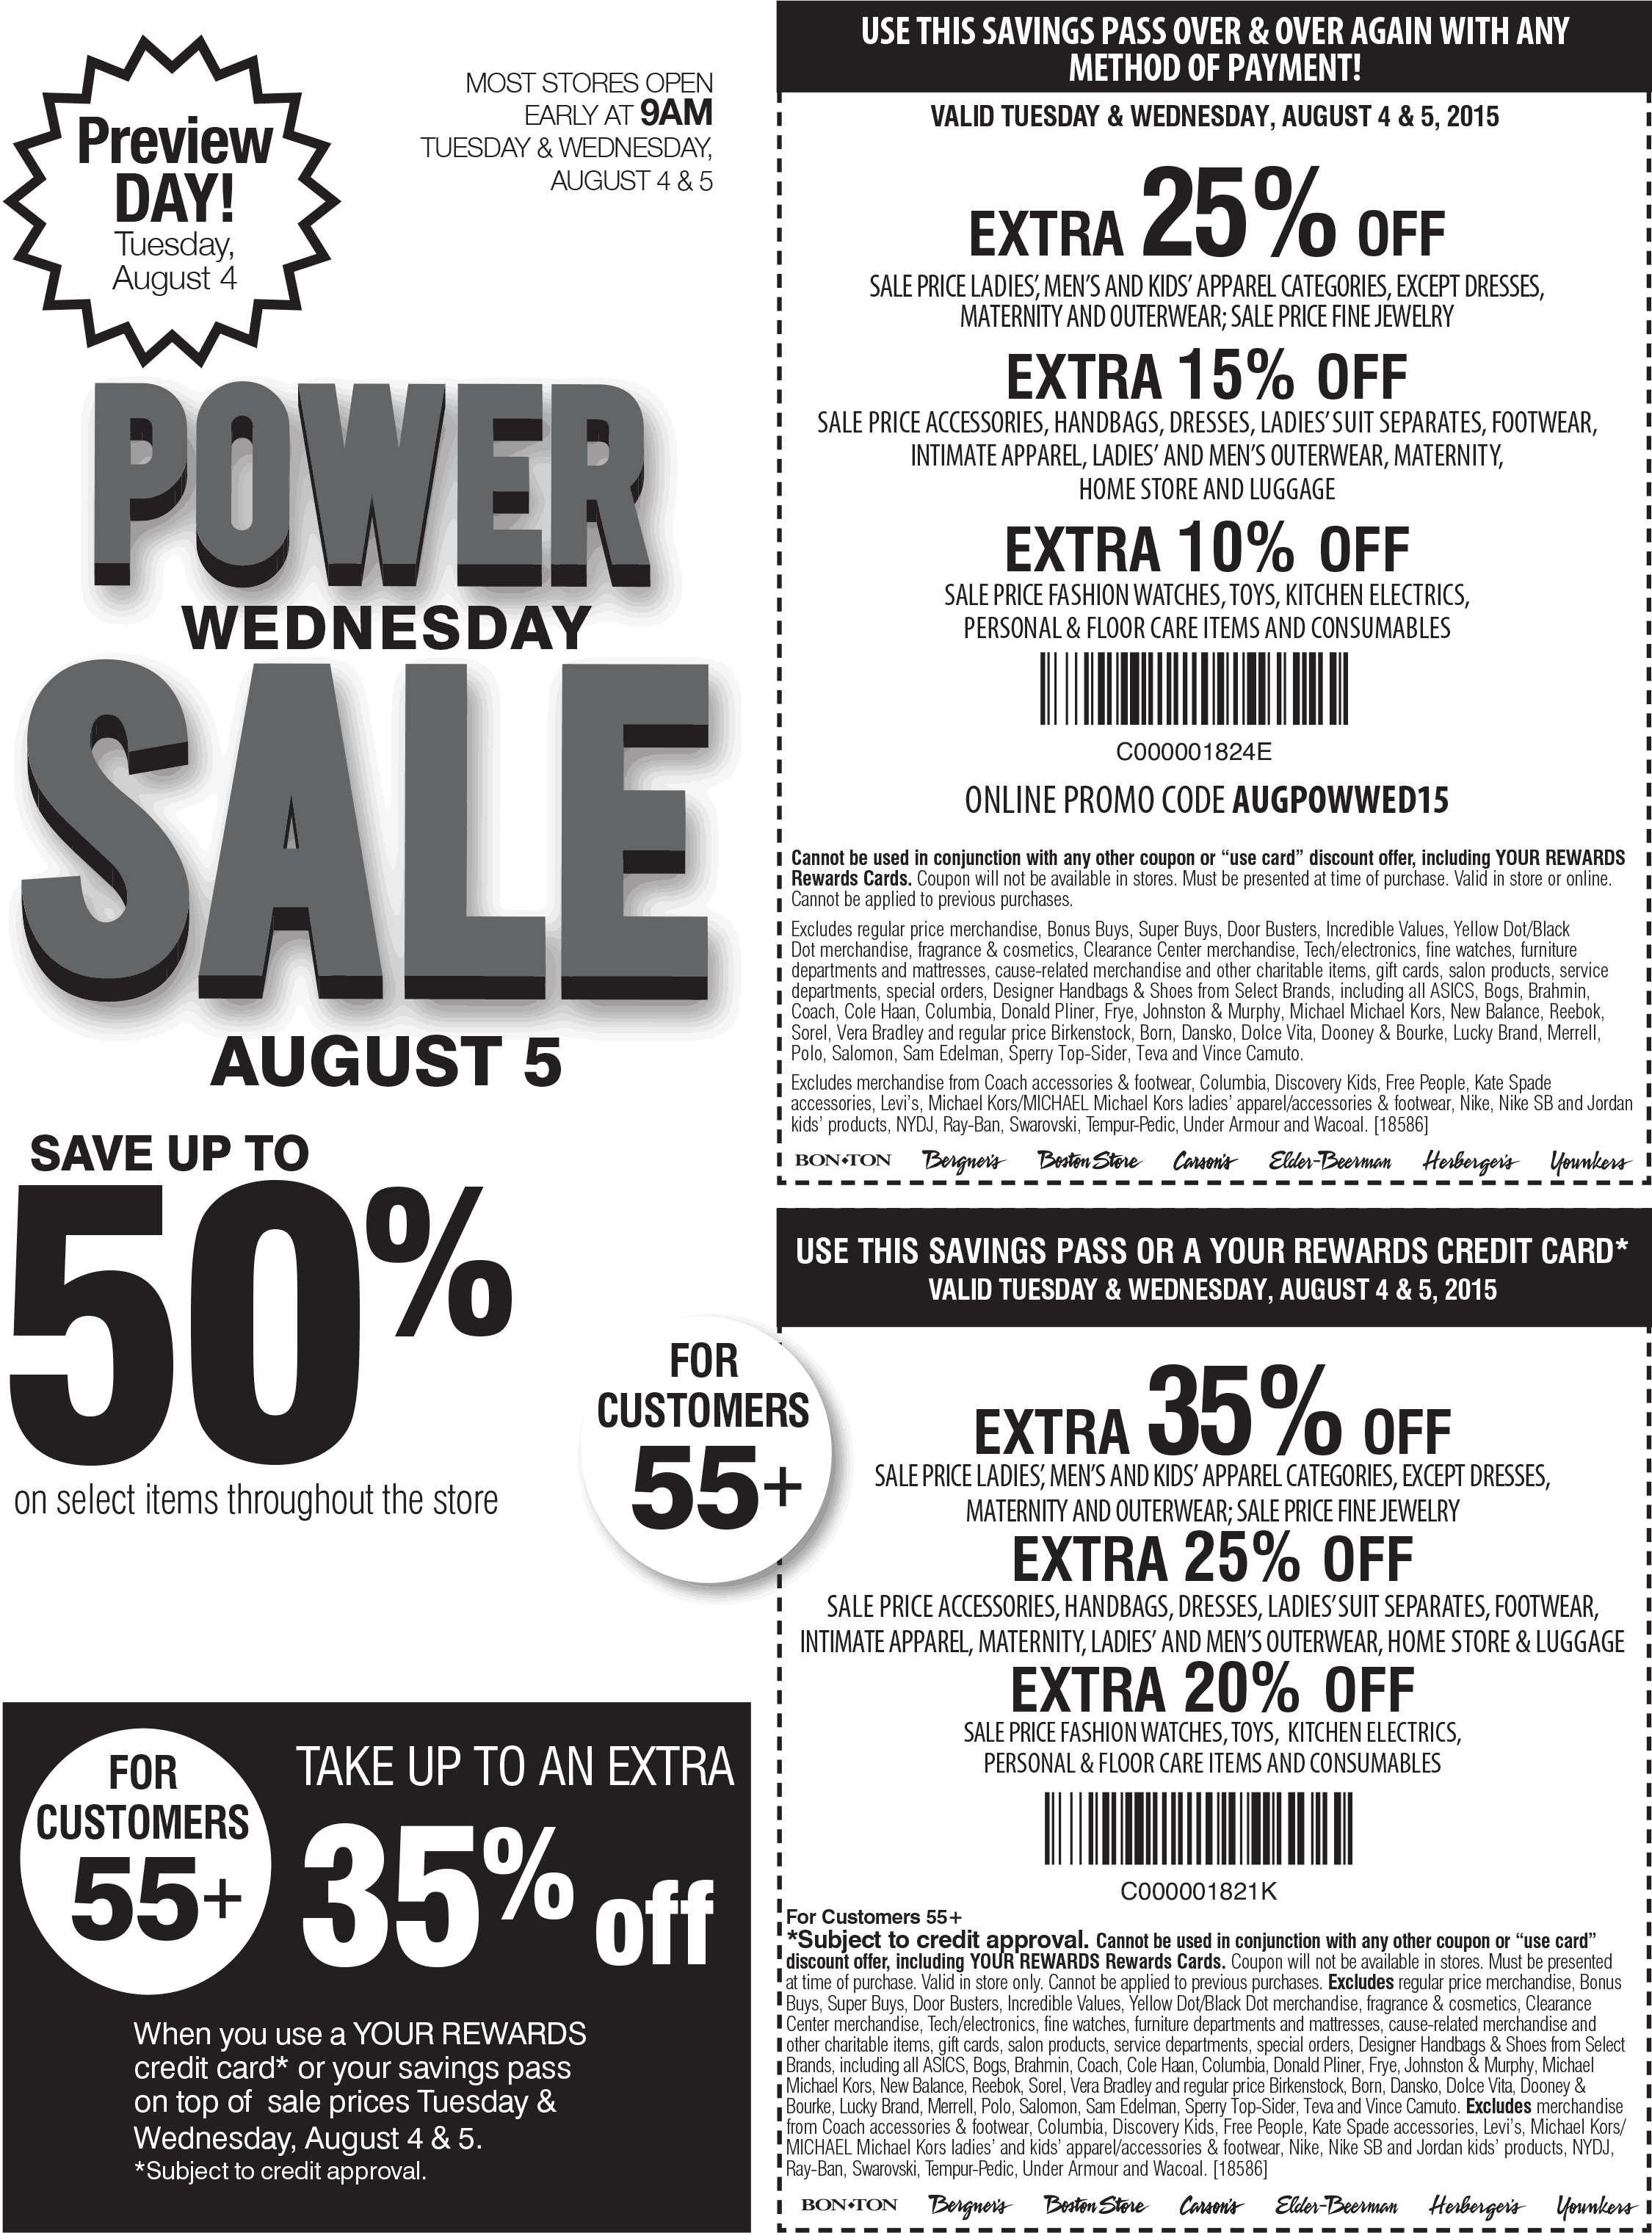 Carsons Coupon May 2017 Extra 25% off sale apparel & more today at Carsons, Bon Ton & sister stores, or online via promo code AUGPOWWED15